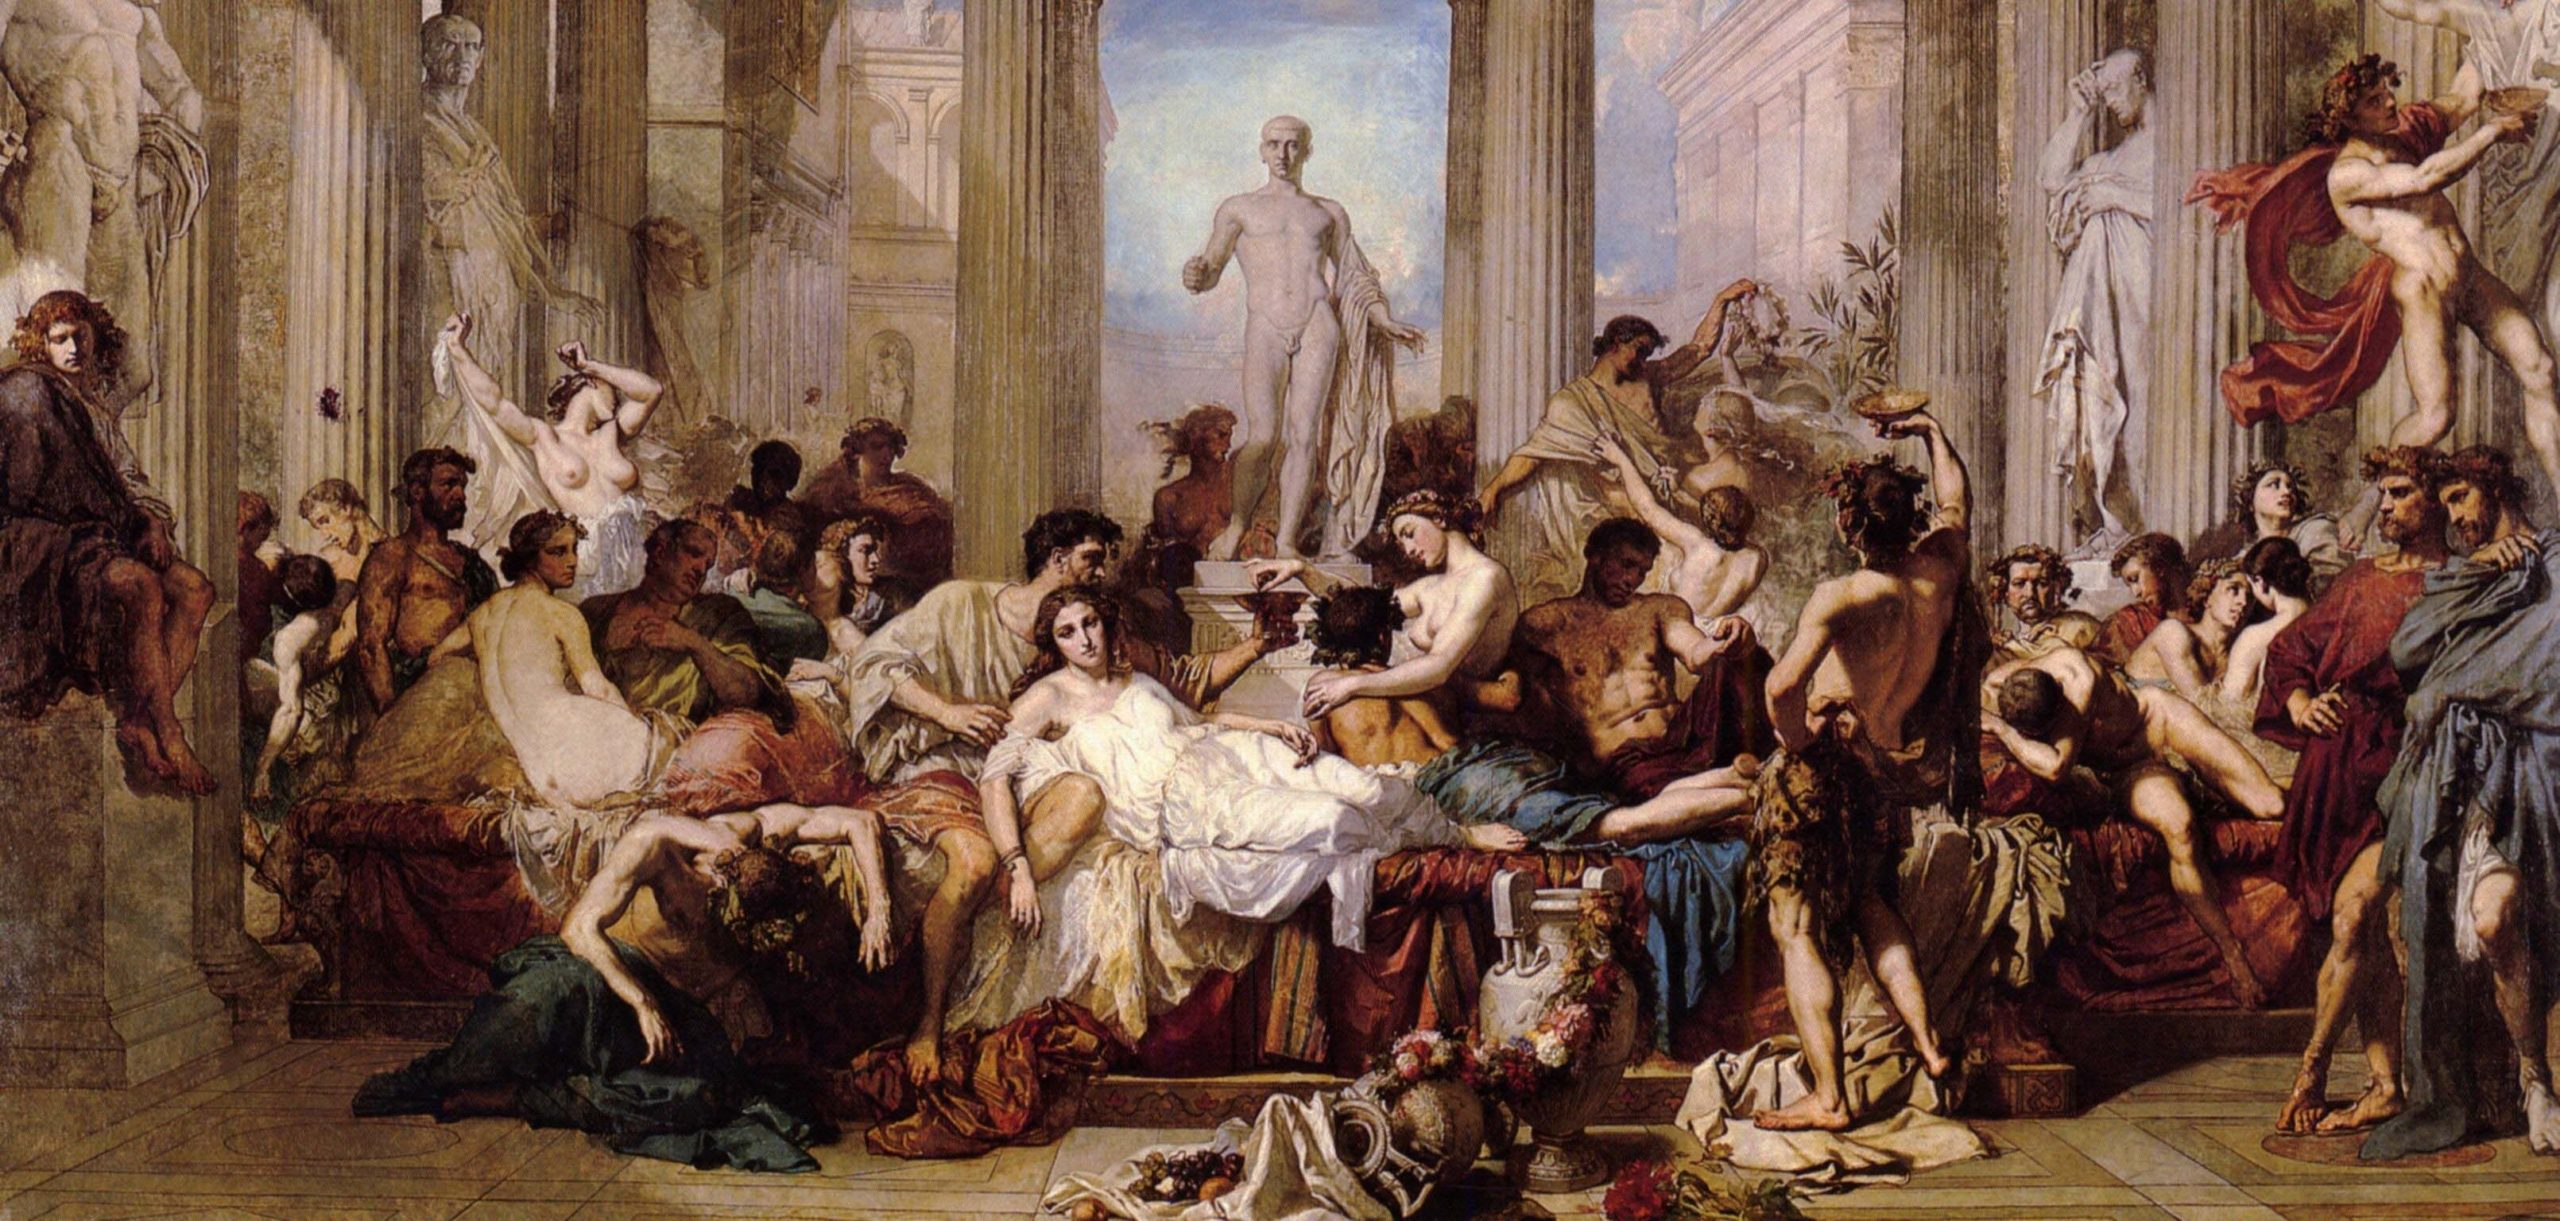 Thomas Couture: Romans in Decadence of Empire (1847)